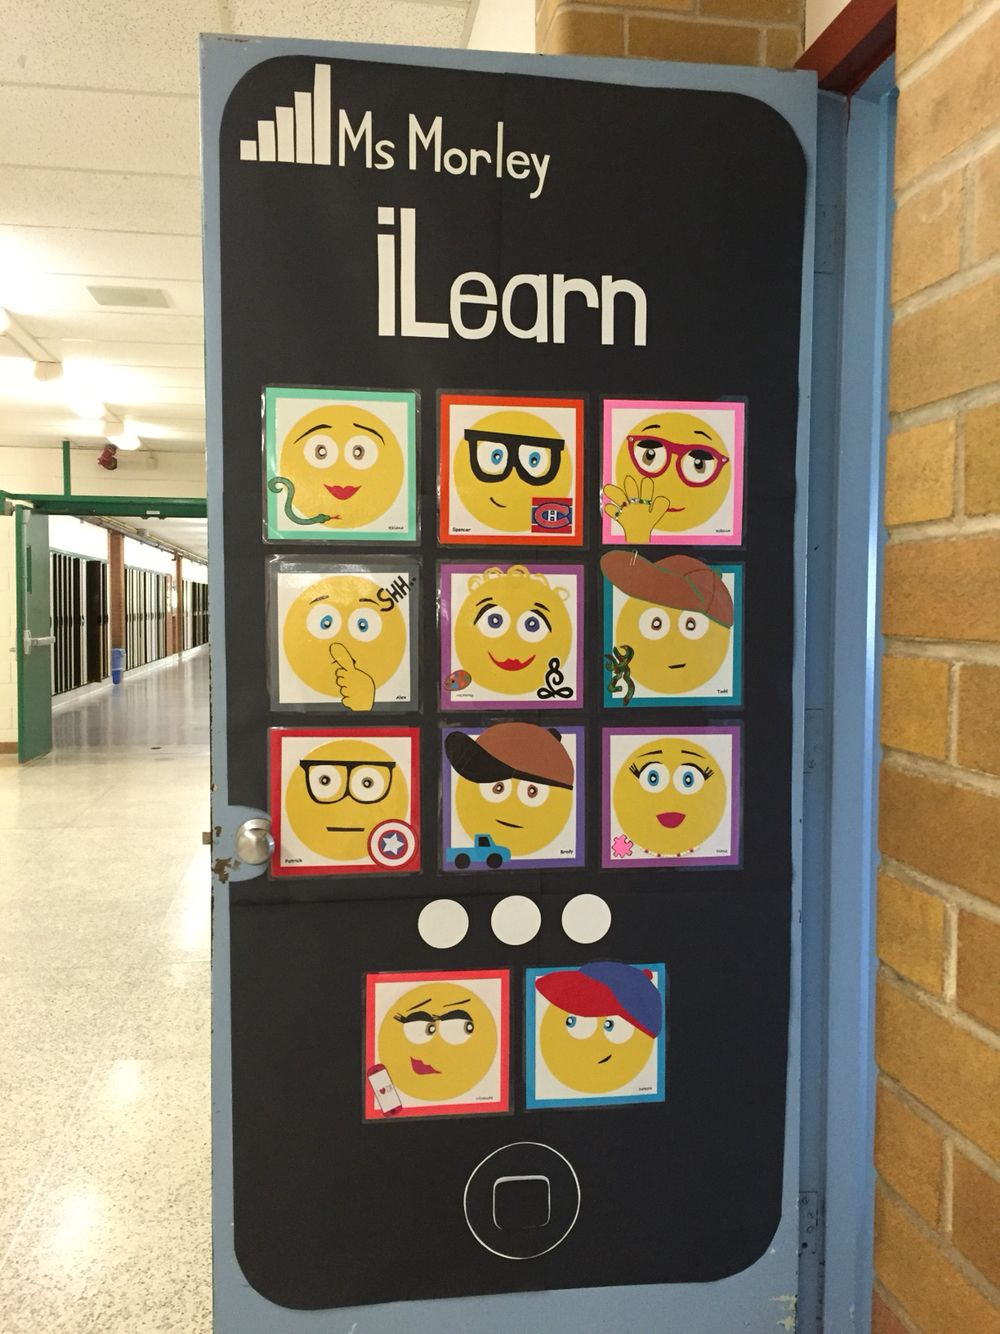 Check out our awesome emoji classroom door my co-workers and I put together. & Check out our awesome emoji classroom door my co-workers and I put ... Pezcame.Com